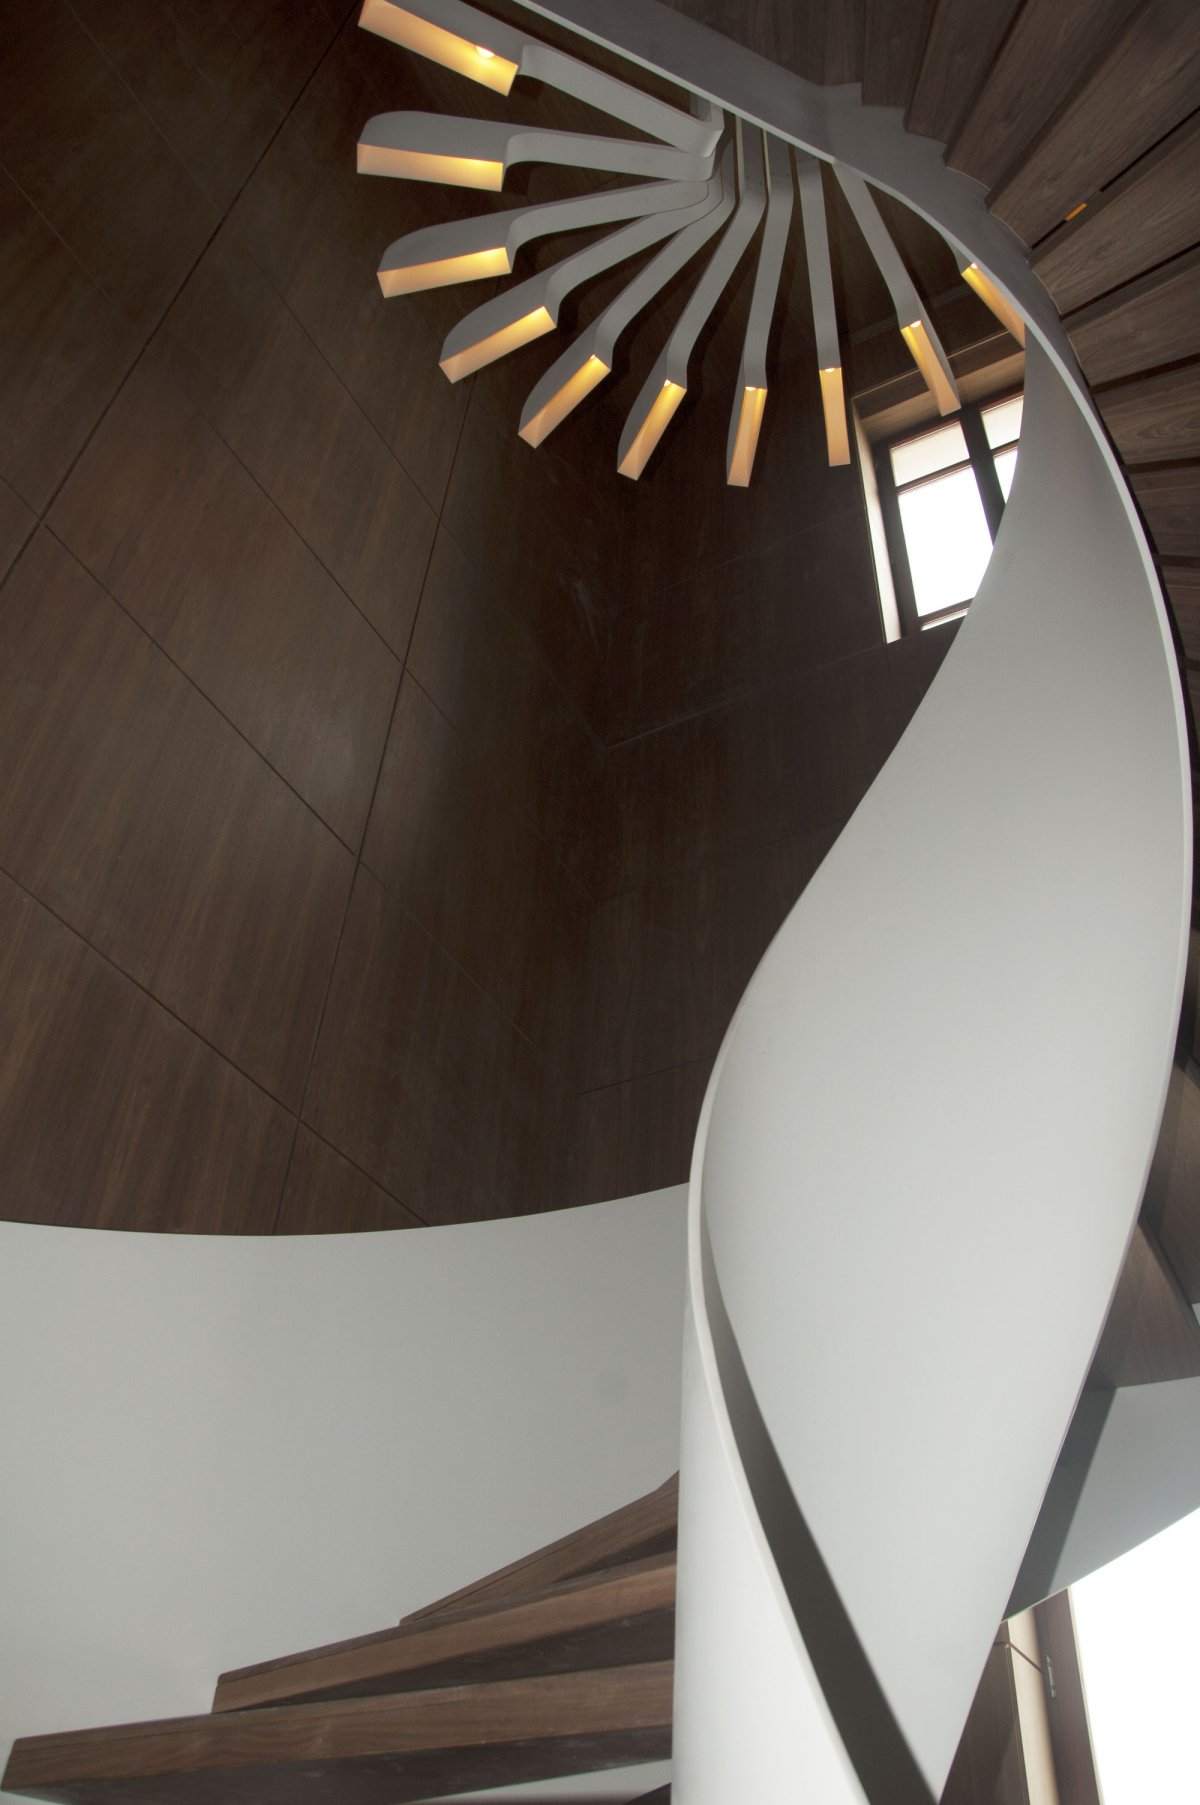 Lighting Basement Washroom Stairs: Spiral Staircase Lighting By .PSLAB